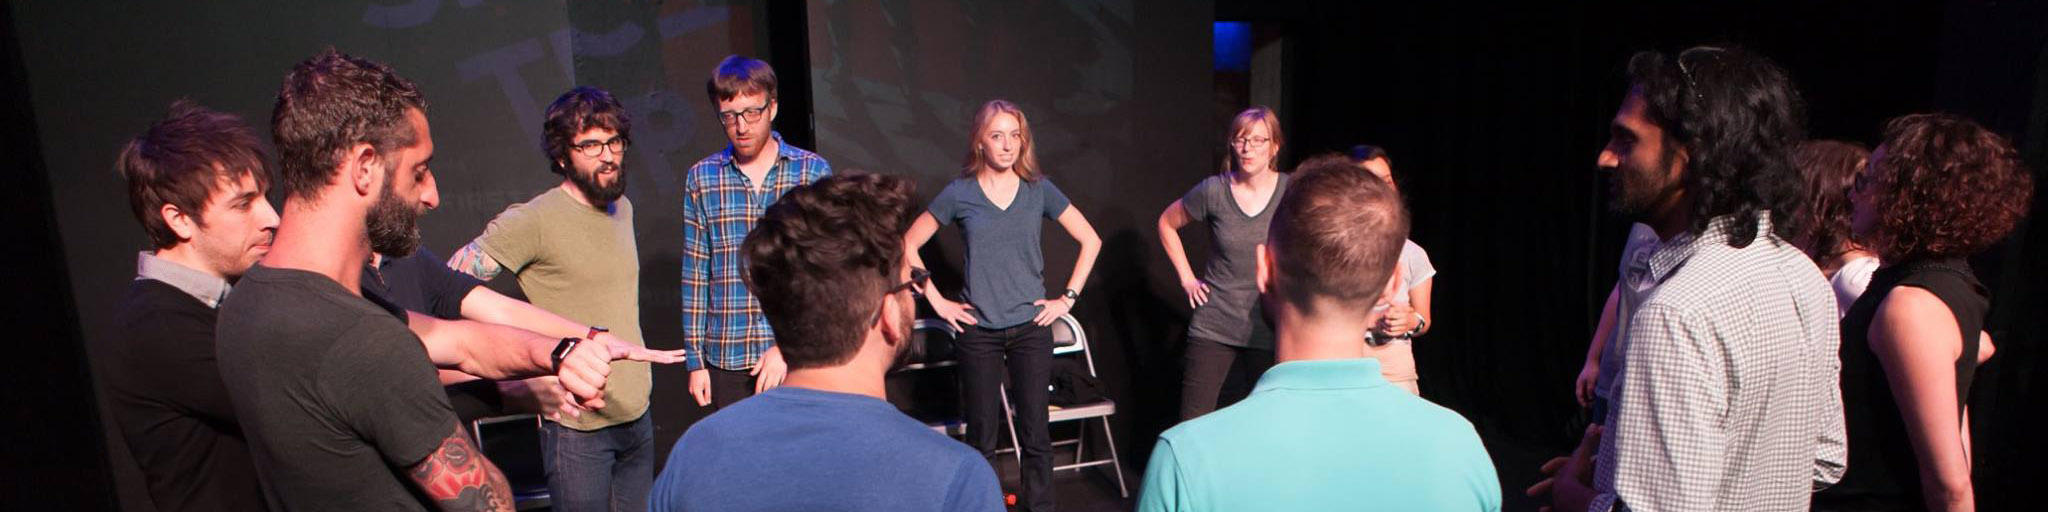 improvisers standing in a circle